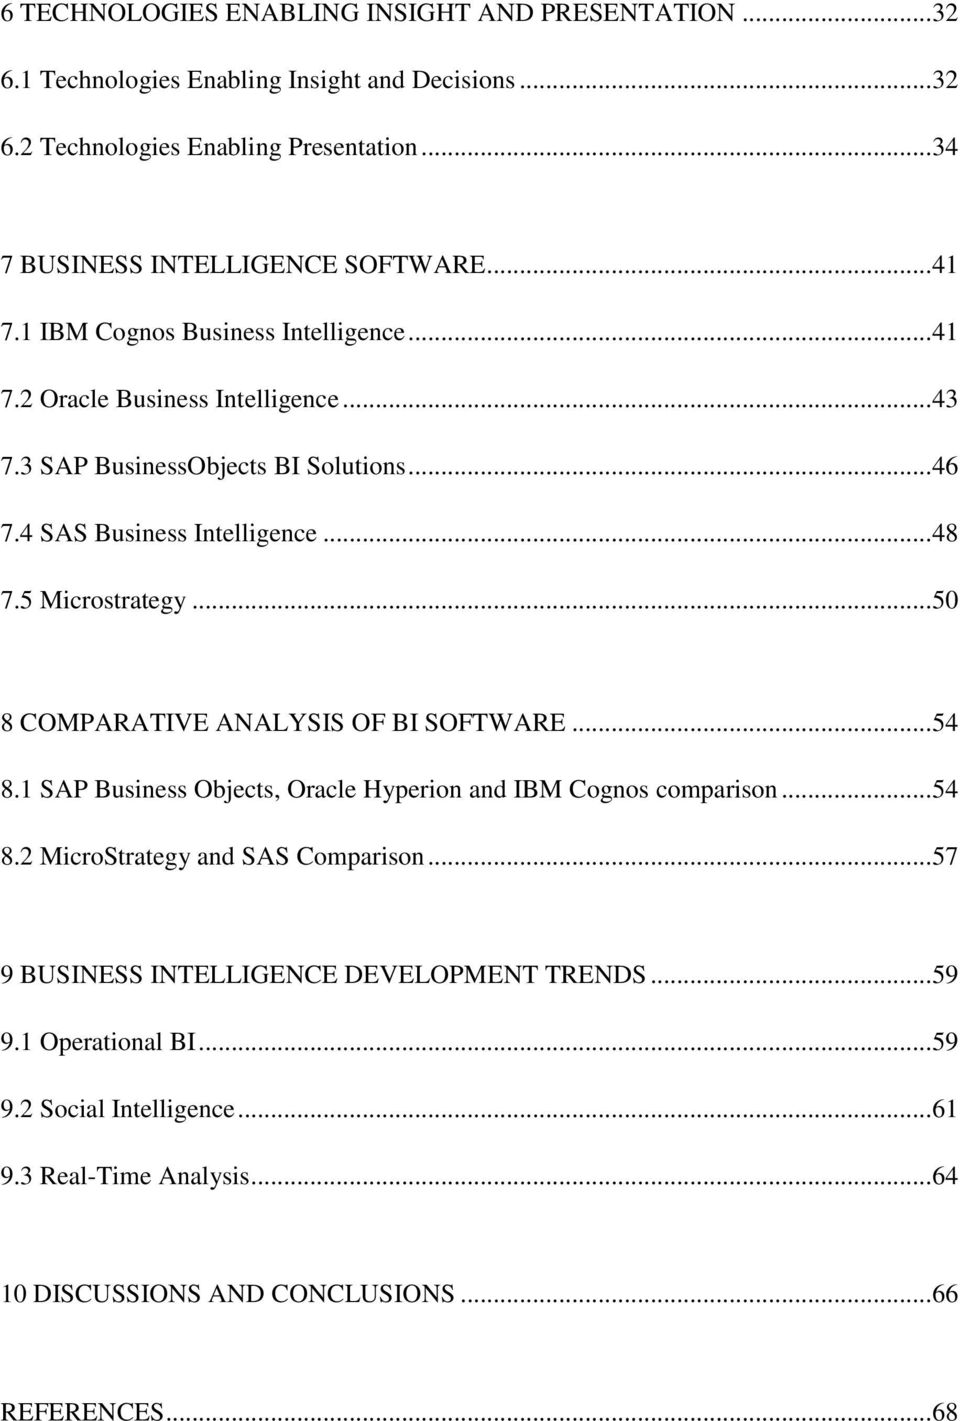 4 SAS Business Intelligence... 48 7.5 Microstrategy... 50 8 COMPARATIVE ANALYSIS OF BI SOFTWARE... 54 8.1 SAP Business Objects, Oracle Hyperion and IBM Cognos comparison... 54 8.2 MicroStrategy and SAS Comparison.